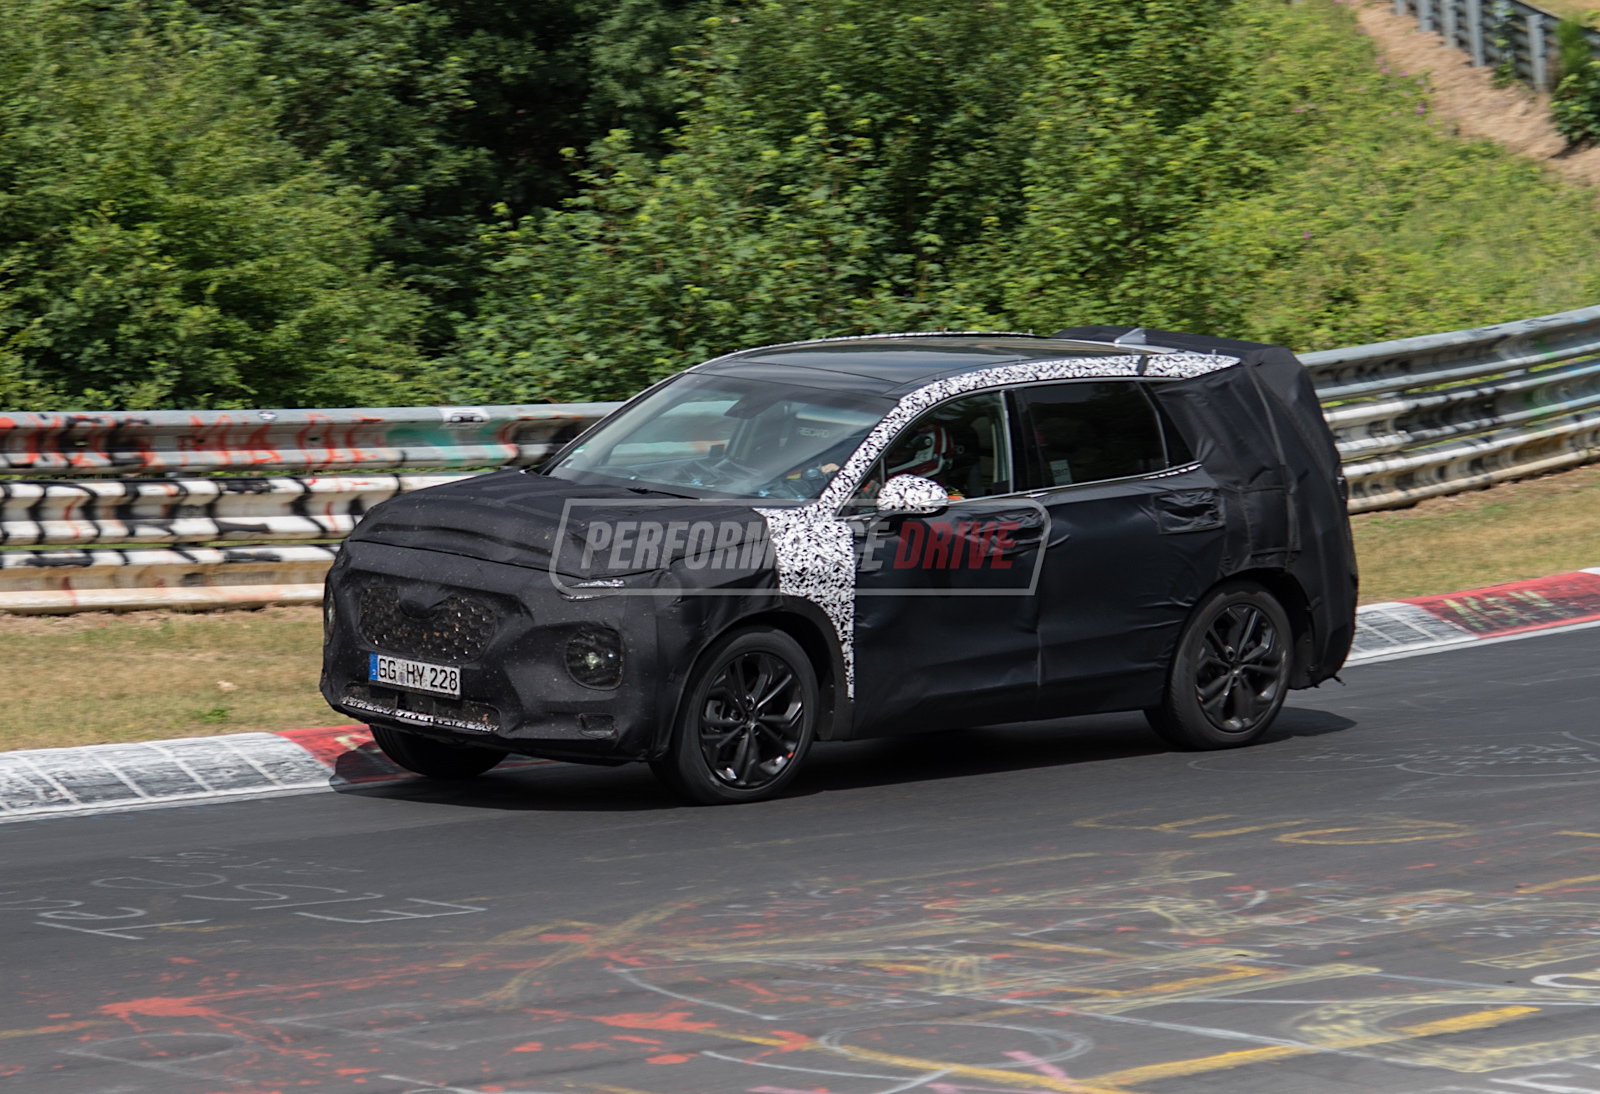 2018 hyundai santa fe spotted testing at nurburgring video performancedrive. Black Bedroom Furniture Sets. Home Design Ideas